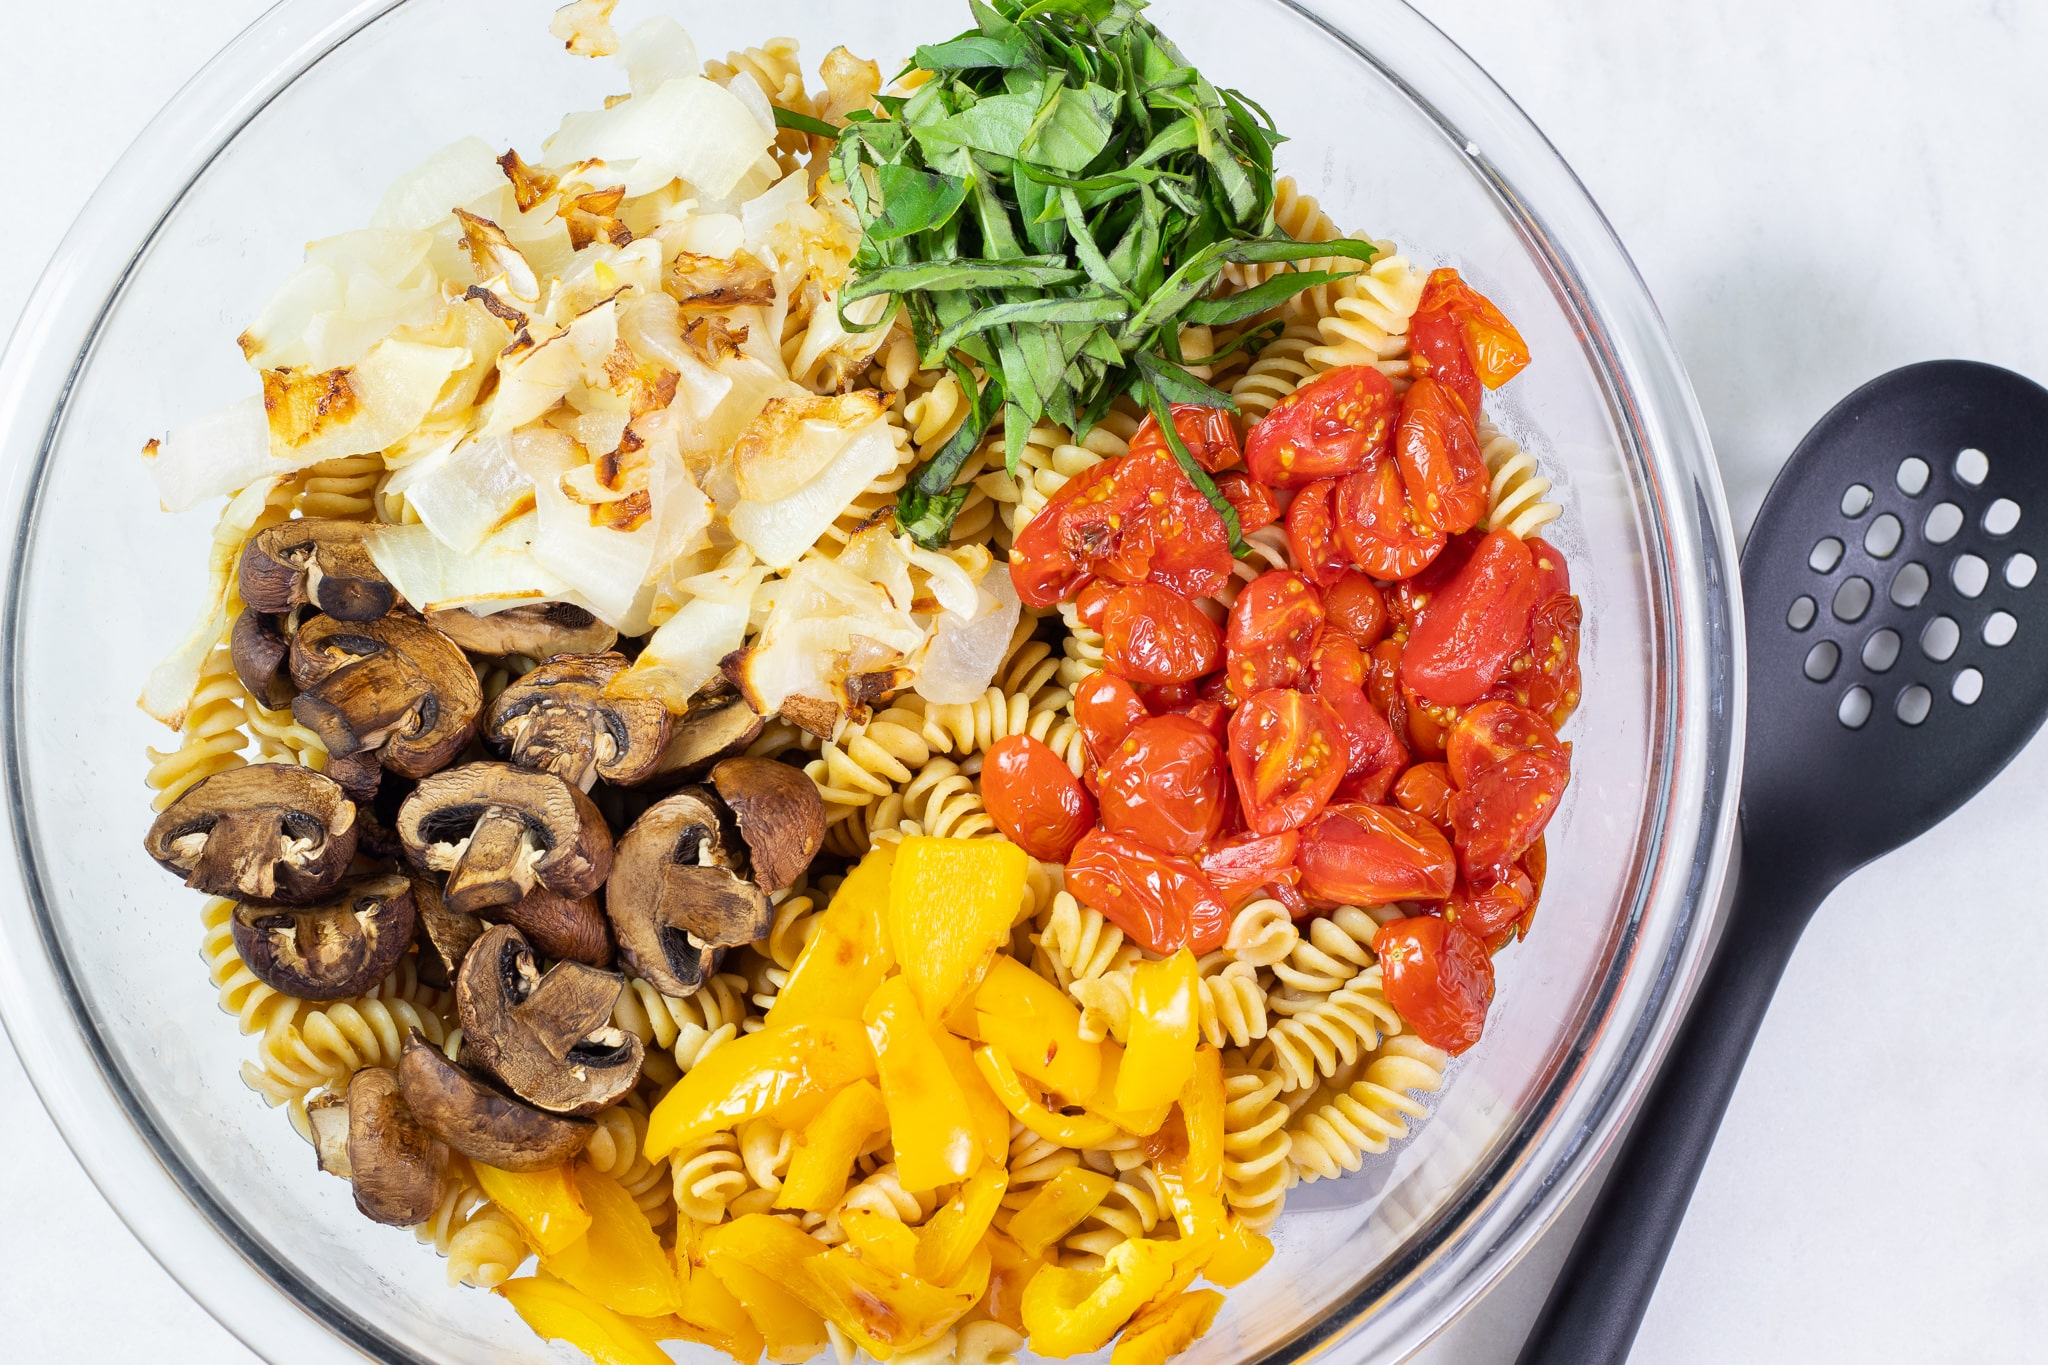 Roasted Vegetables and Pasta in a Mixing Bowl